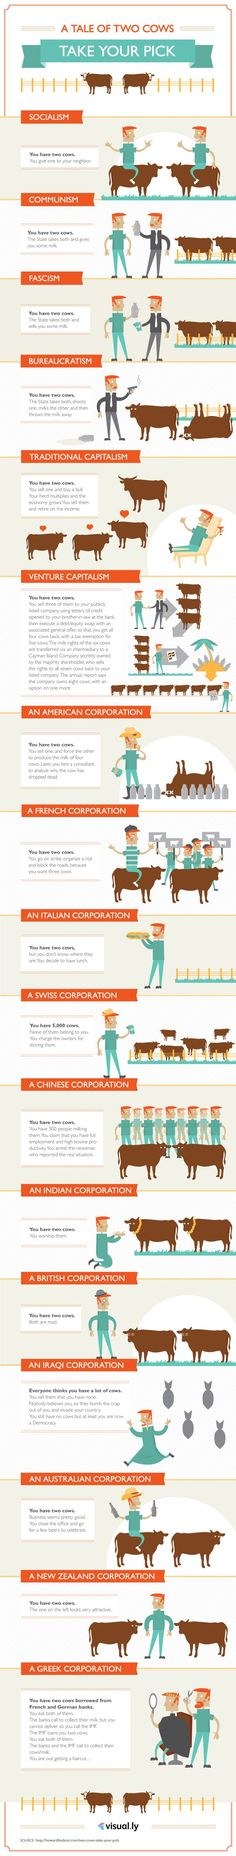 Funny and useful info at the bottom! Visual Storytelling: A Tale of Two Cows #irresistiblestorytelling